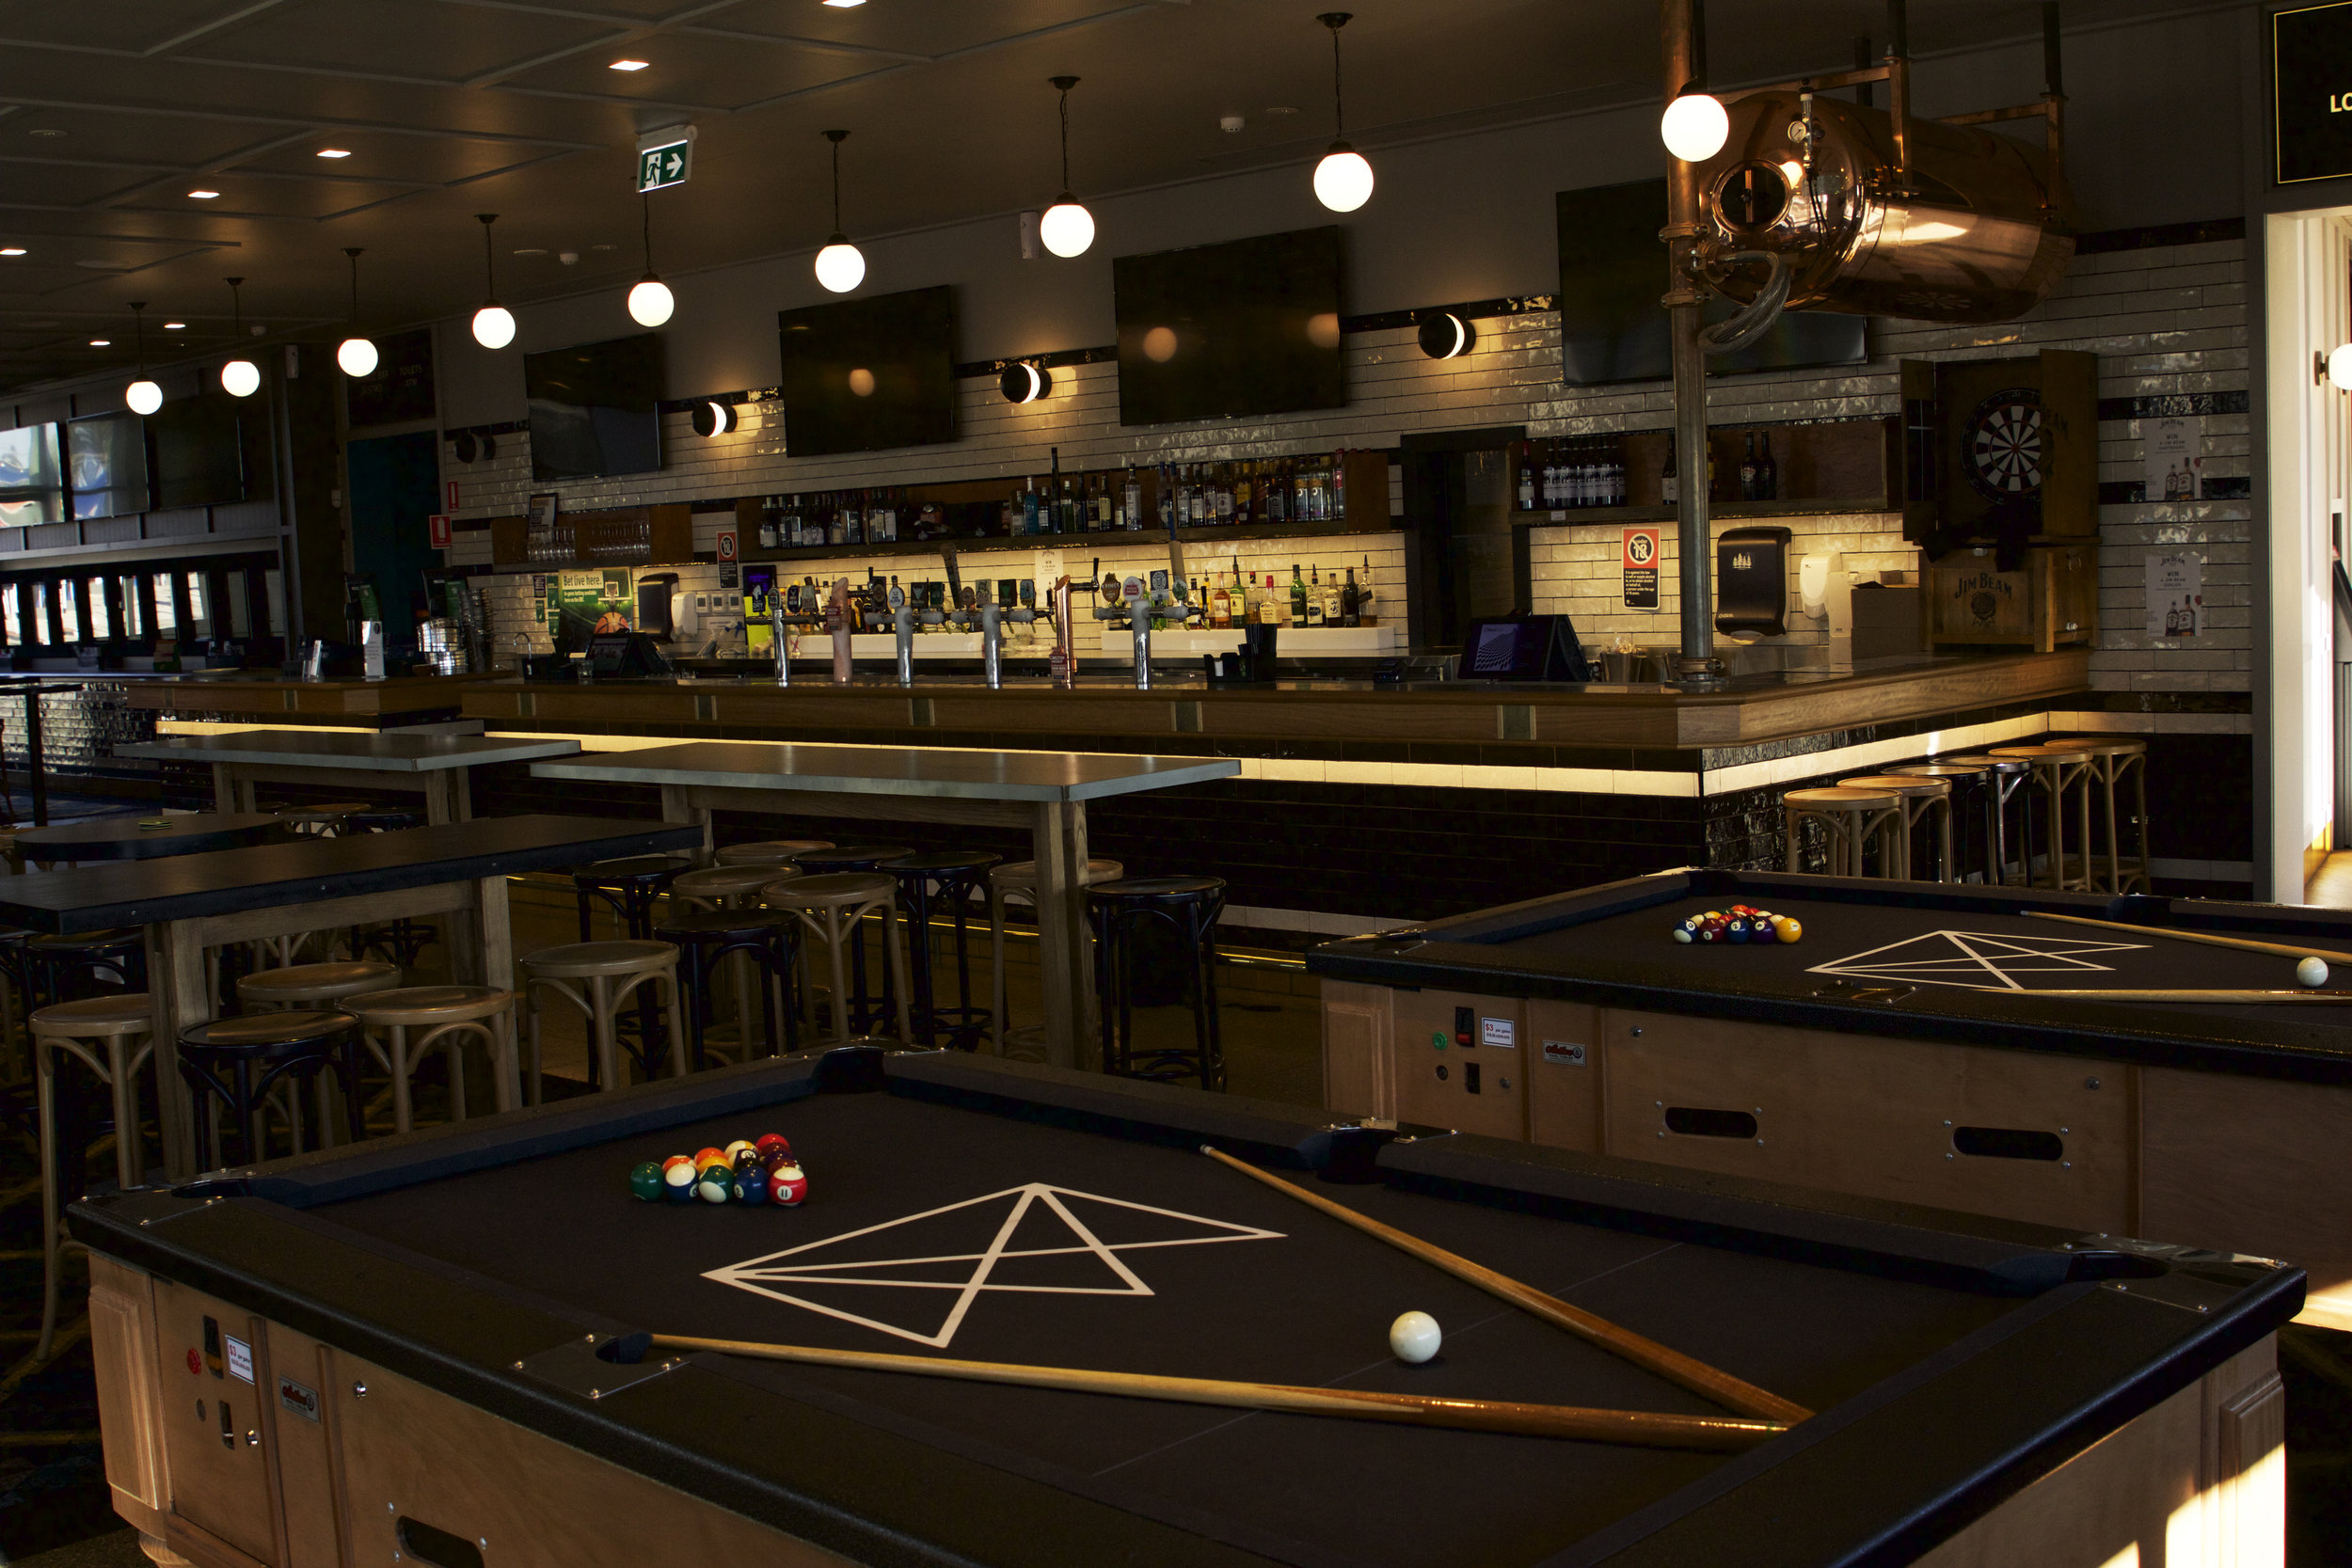 ACTIVEPOOLTABLES - Olio pool table